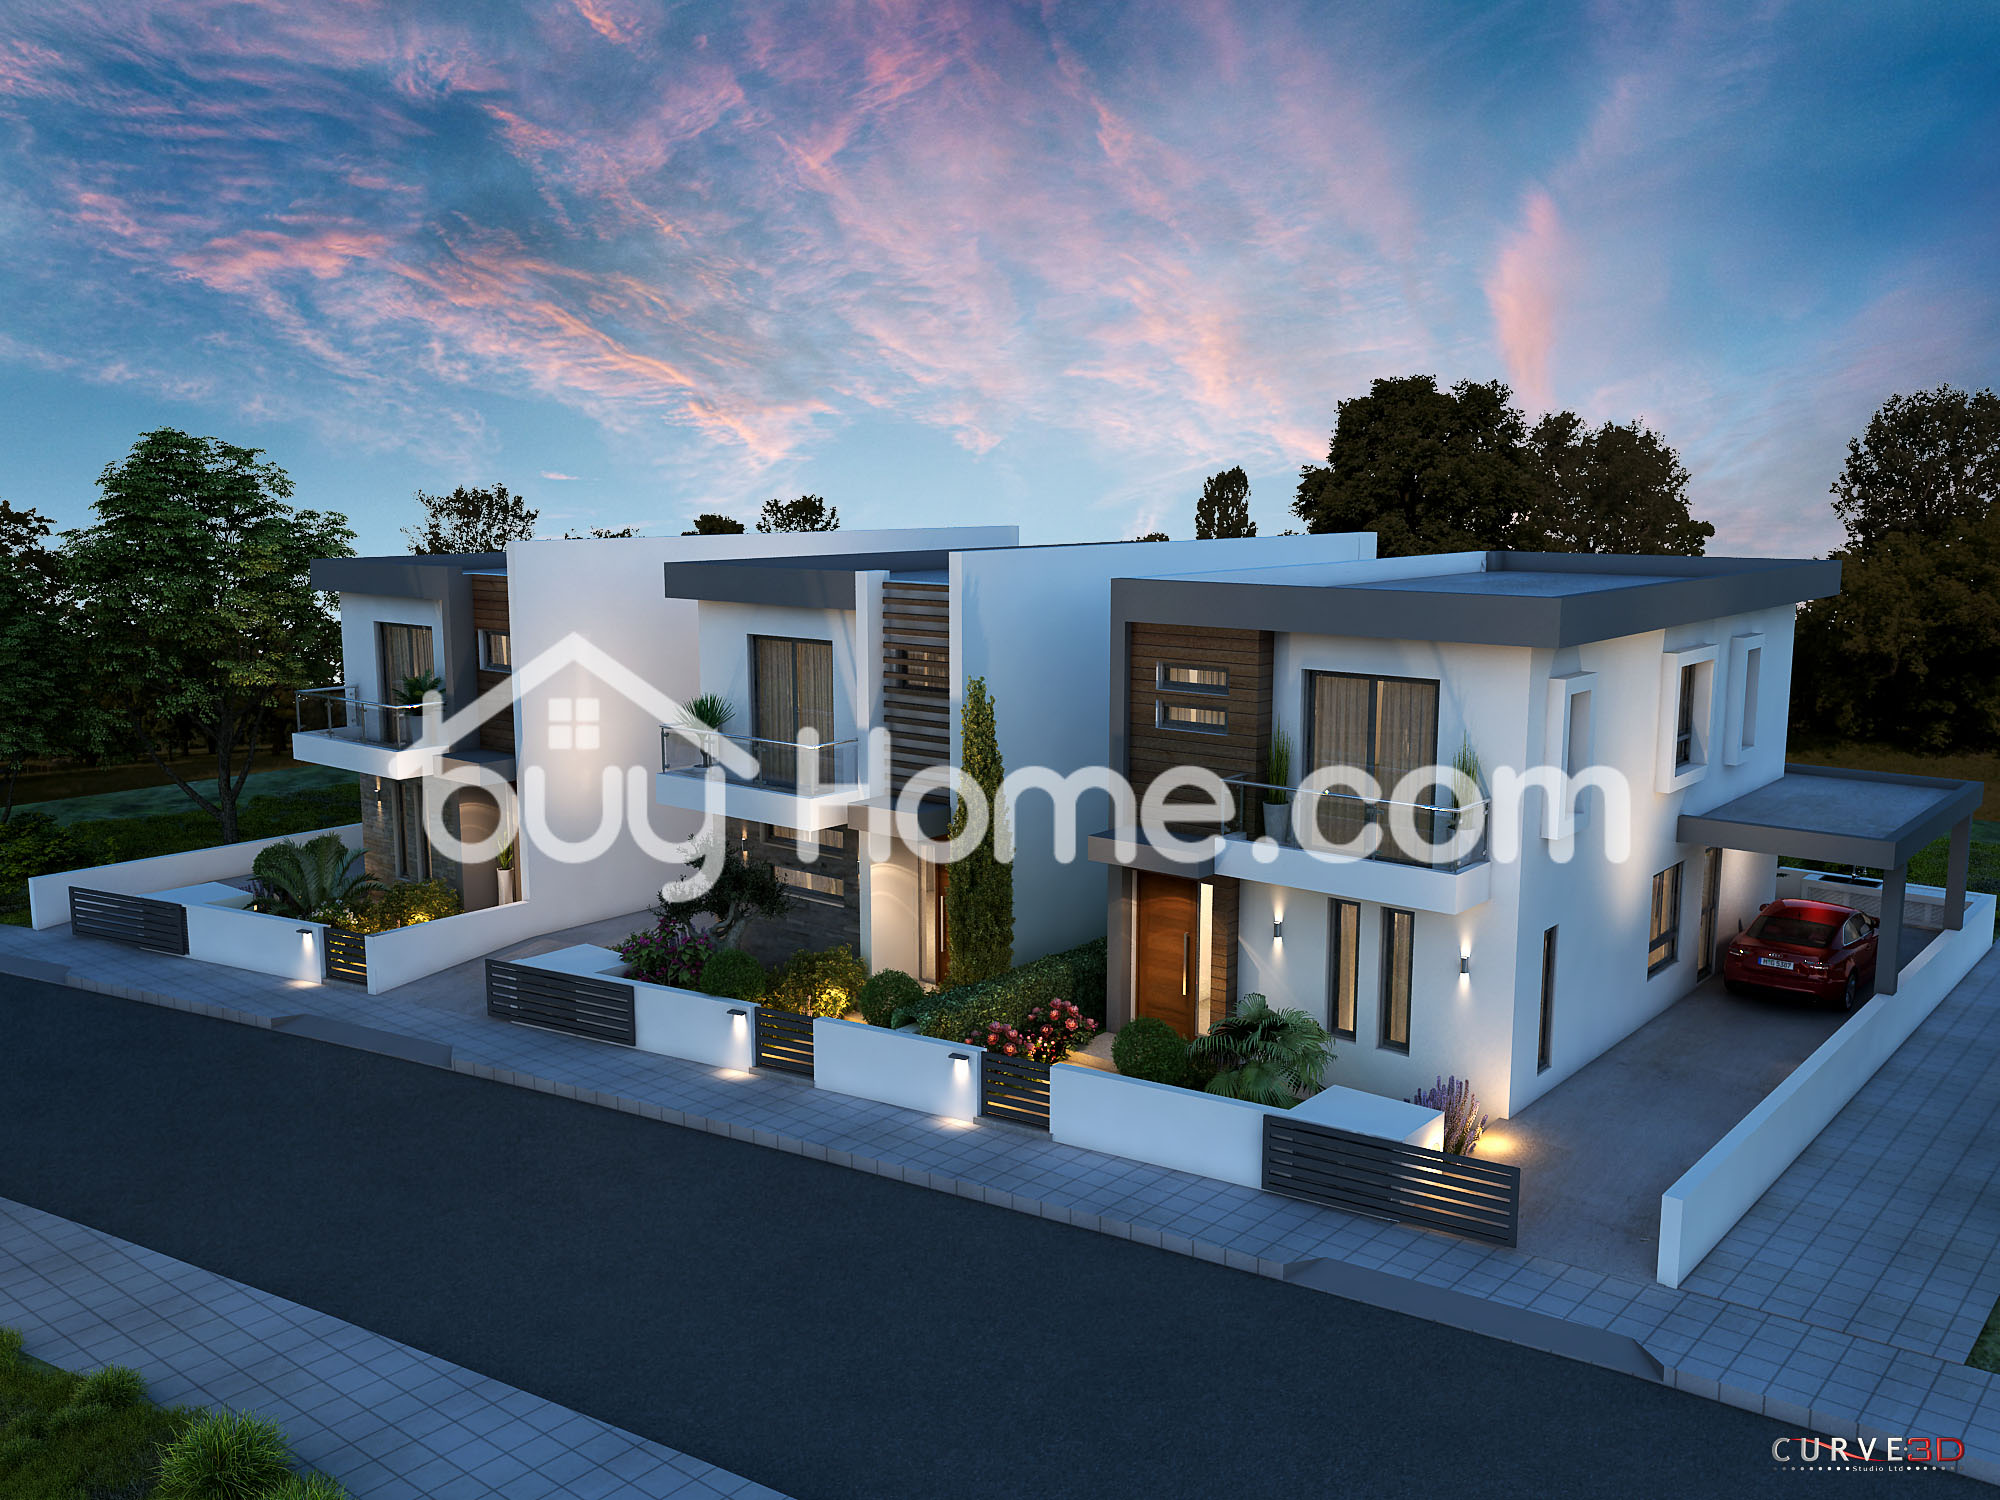 3 BDR house under construction   BuyHome